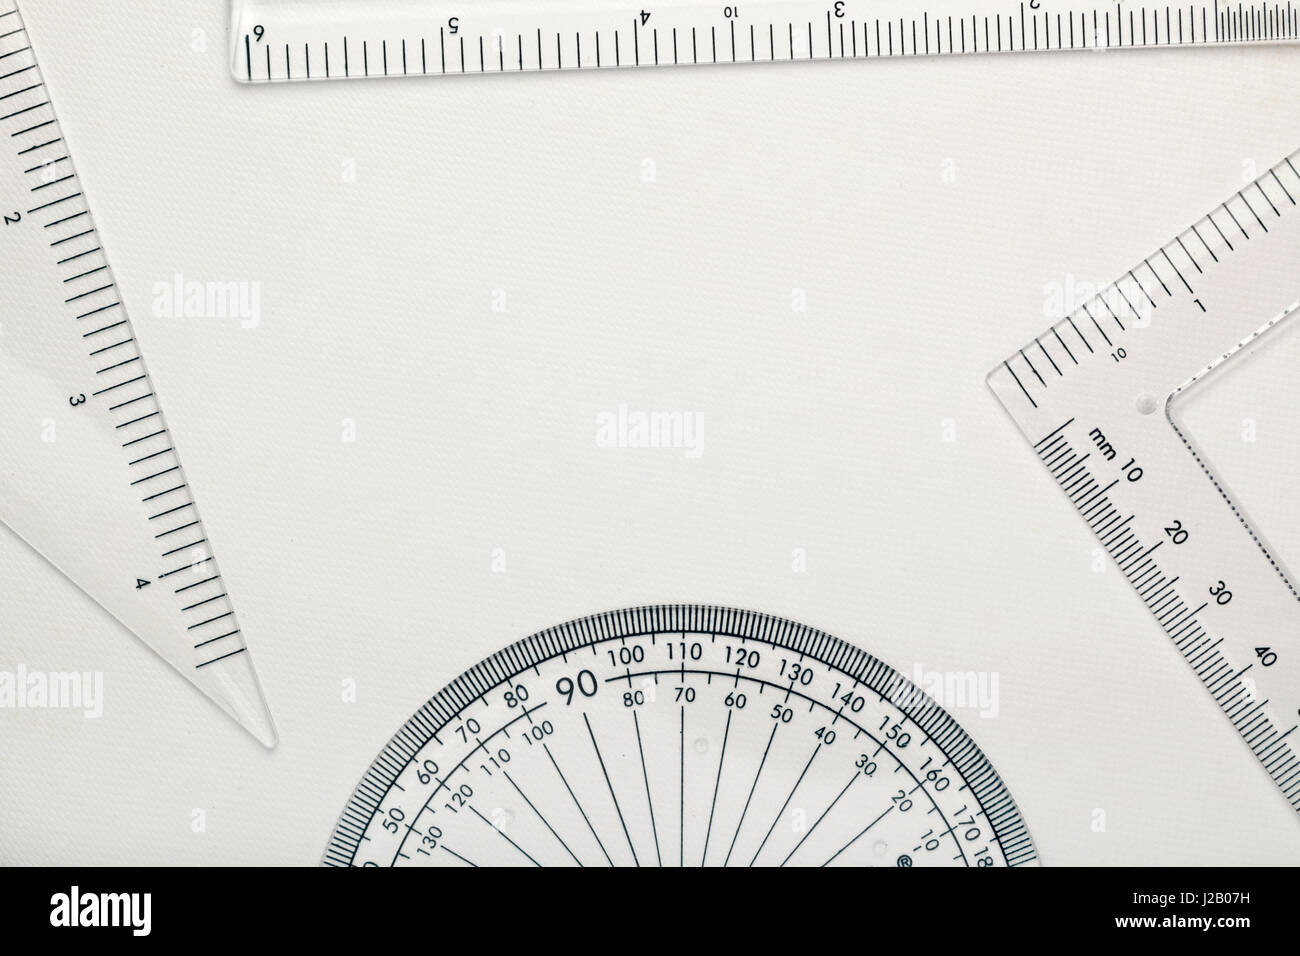 Geometry instruments creating copy space against white background - Stock Image